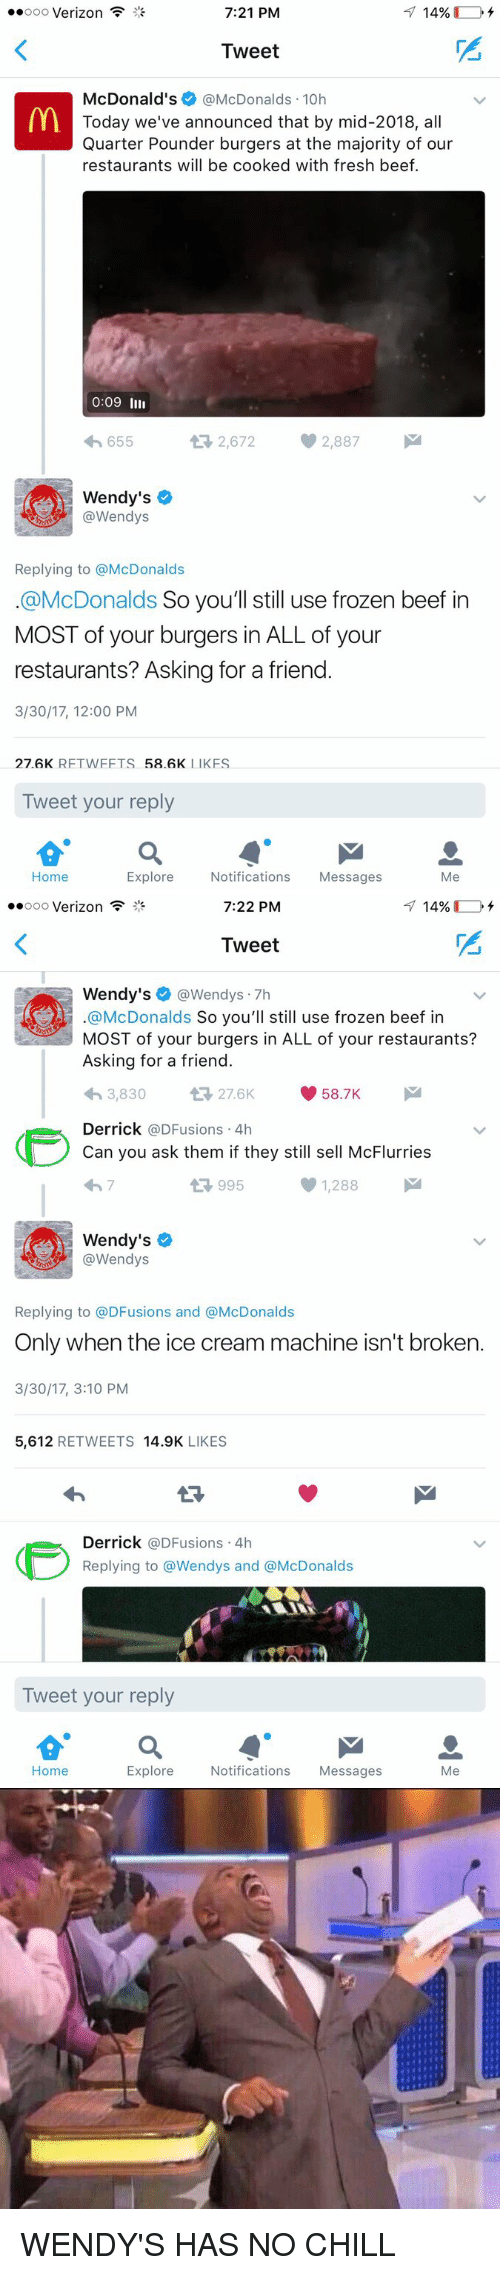 Beef: ooo Verizon  7:21 PM  14%  Tweet  McDonald's  McDonalds 10h  Today we've announced that by mid-2018, all  Quarter Pounder burgers at the majority of our  restaurants will be cooked with fresh beef.  0:09  655  t 2,672 2,887  M  Wendy's  @Wendys  Replying to @McDonalds  @McDonalds  So you'll still use frozen beef in  MOST of your burgers in ALL of your  restaurants? Asking for a friend.  3/30/17, 12:00 PM  27.6K  RET WEETS  58.6K  LIKES  Tweet your reply  Home  Explore  Notifications  Messages  Me   ooo Verizon  7:22 PM  14%  Tweet  Wendy's  @Wendys  7h  a McDonalds So you  still use frozen beef in  MOST of your burgers in ALL of your restaurants?  Asking for a friend.  3,830  27.6K  V 58.7K  Derrick  @DFusions 4h  Can you ask them if they still sell McFlurries  1,288  t 995  Wendy's  @Wendys  Replying to @DFusions and @McDonalds  Only when the ice cream machine isn't broken.  3/30/17, 3:10 PM  5,612  RETWEETS 14.9K  LIKES  Derrick  @DFusions 4h  Replying to @Wendys and @McDonalds  Tweet your reply  Home  Explore  Notifications  Messages  Me WENDY'S HAS NO CHILL